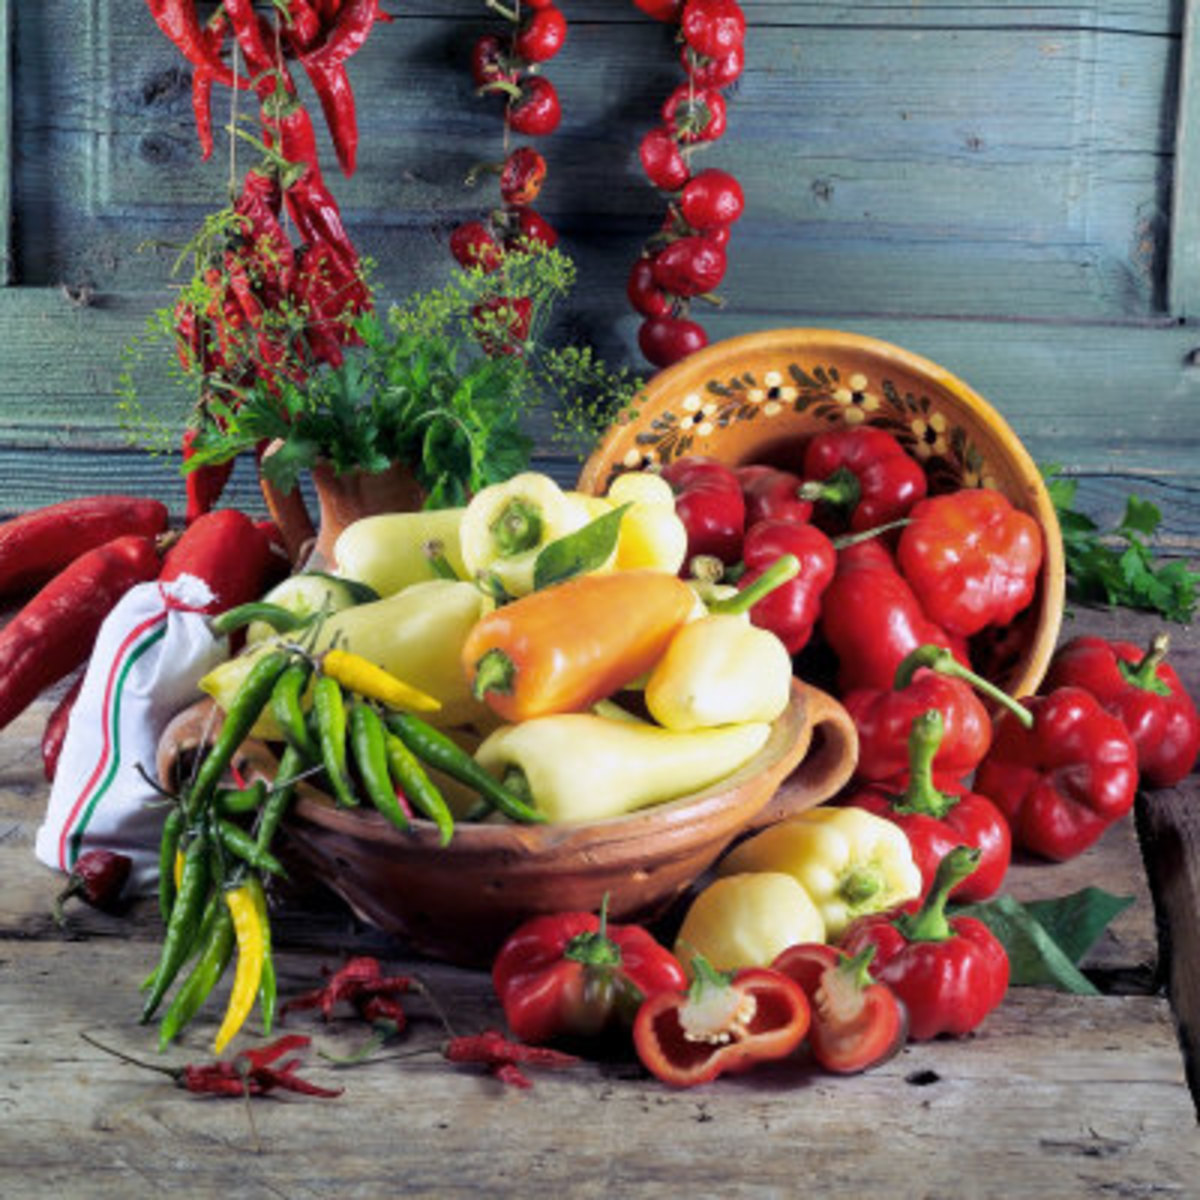 Paprika (spice made from peppers) is the most iconic of Hungarian flavors. It is the basis for this famous chicken dish.